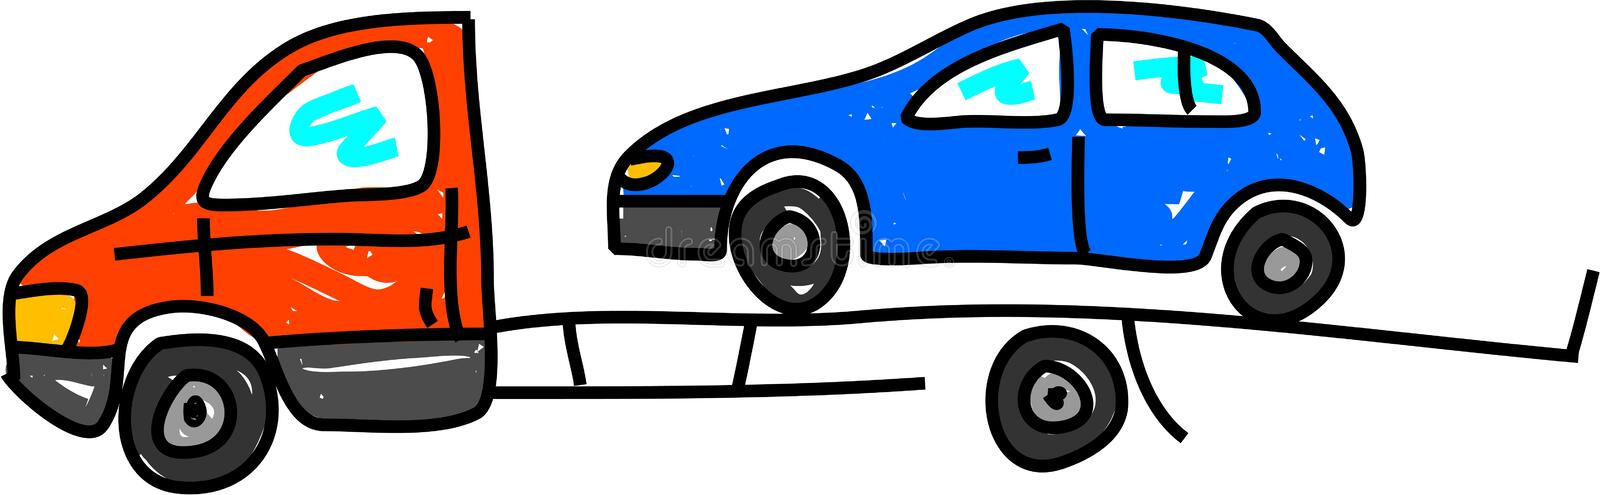 Recovery transporter royalty free illustration